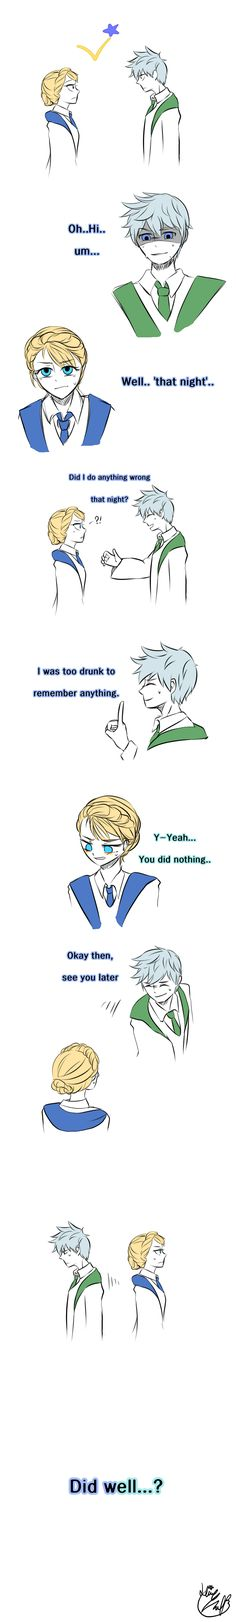 Lie by Lime-Hael on deviantART | Frozen's Elsa and Rise of the Guardians' Jack Frost | J.K. Rowling's Harry Potter